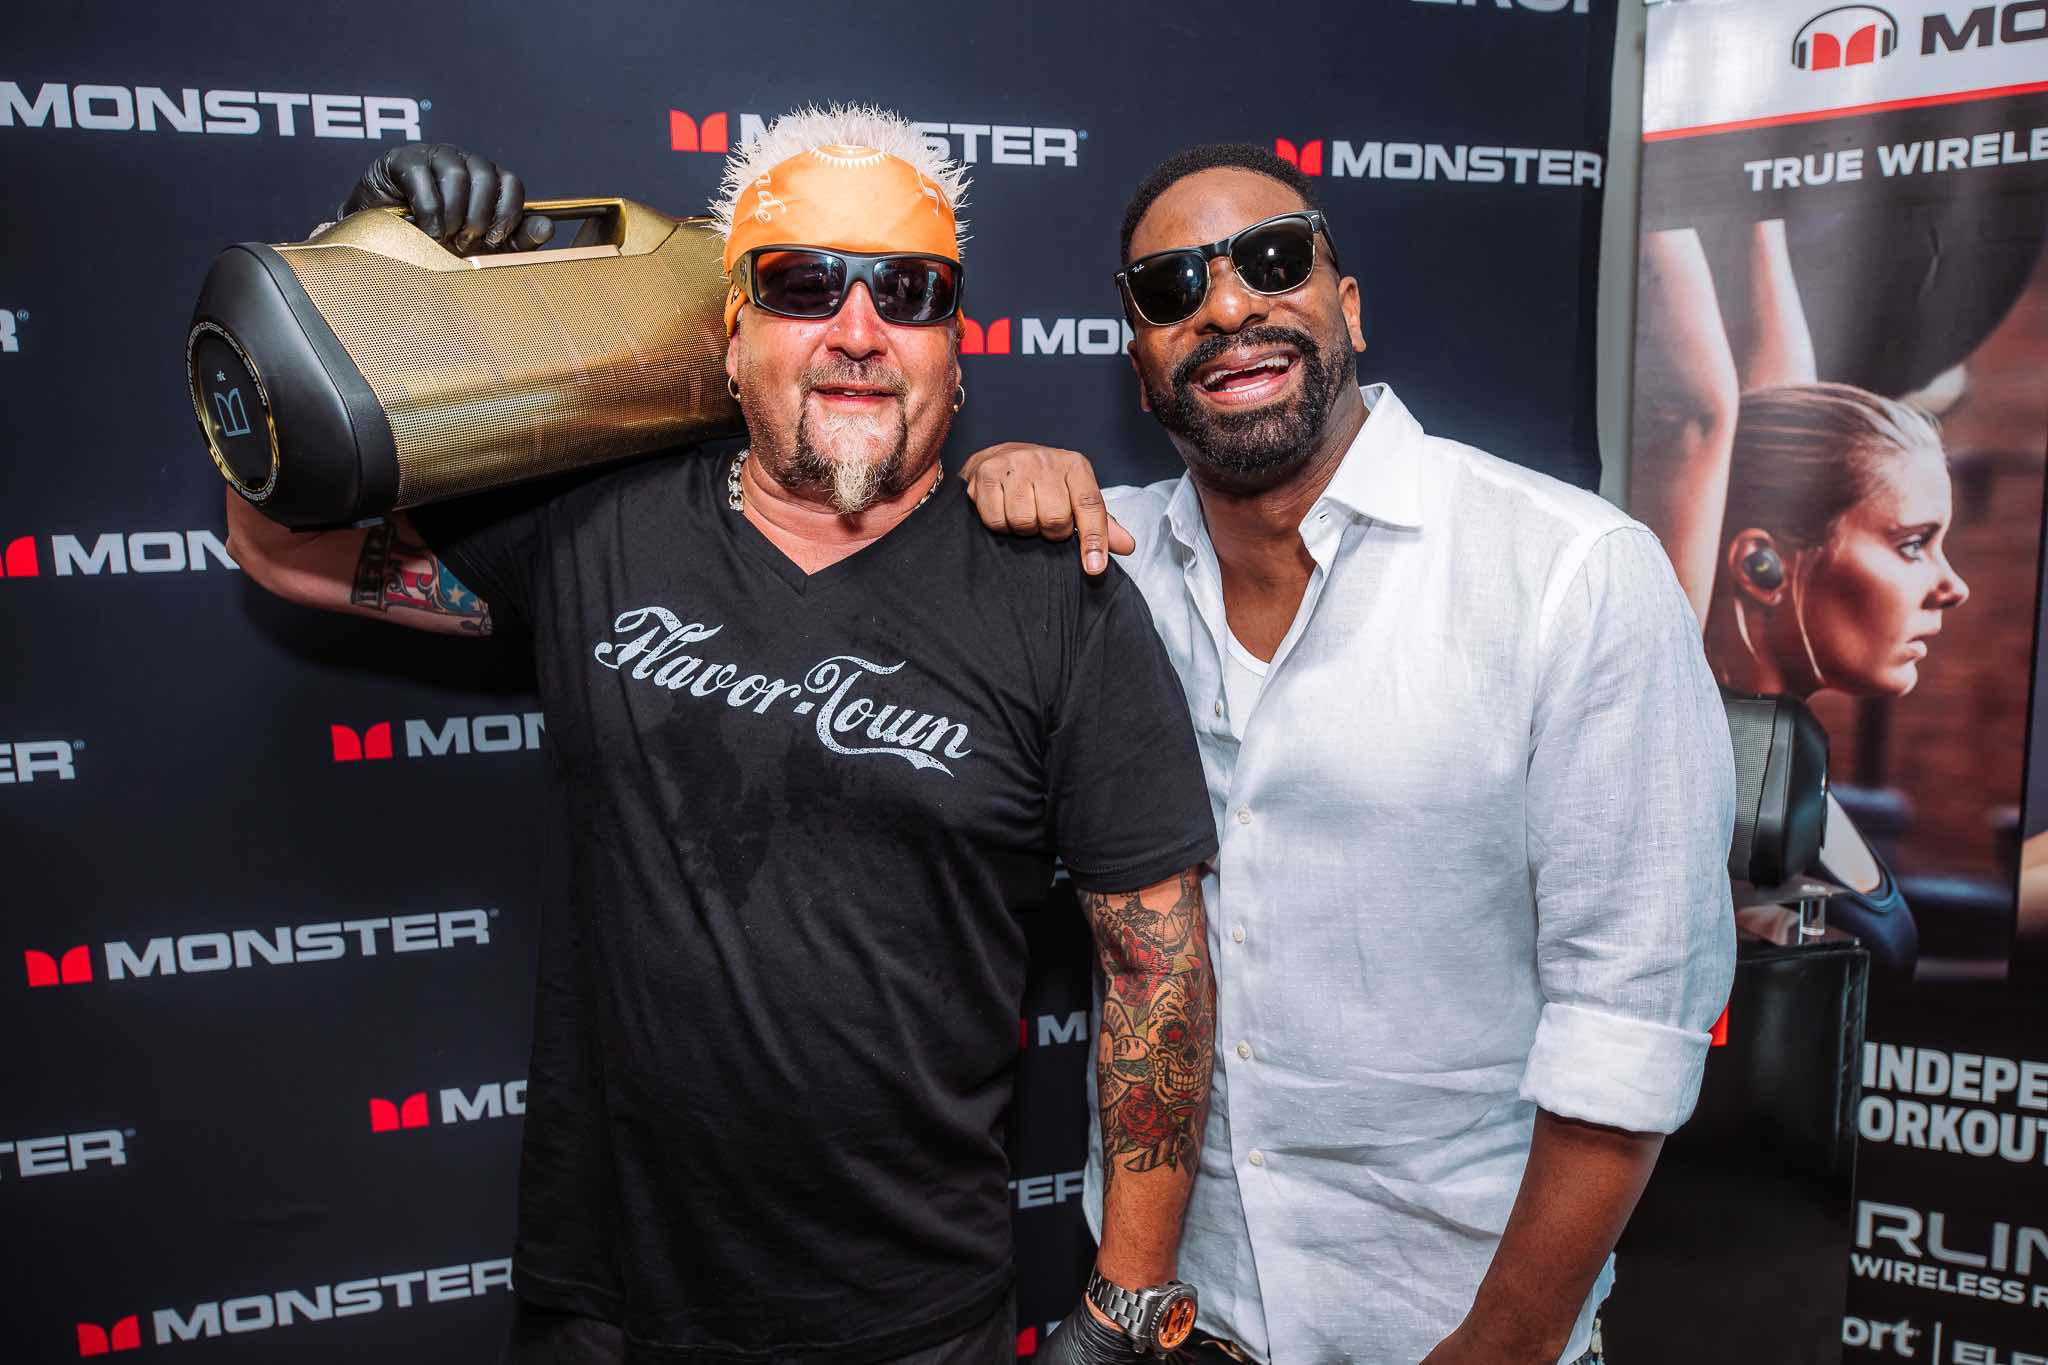 Guy Fieri and DJ Irie